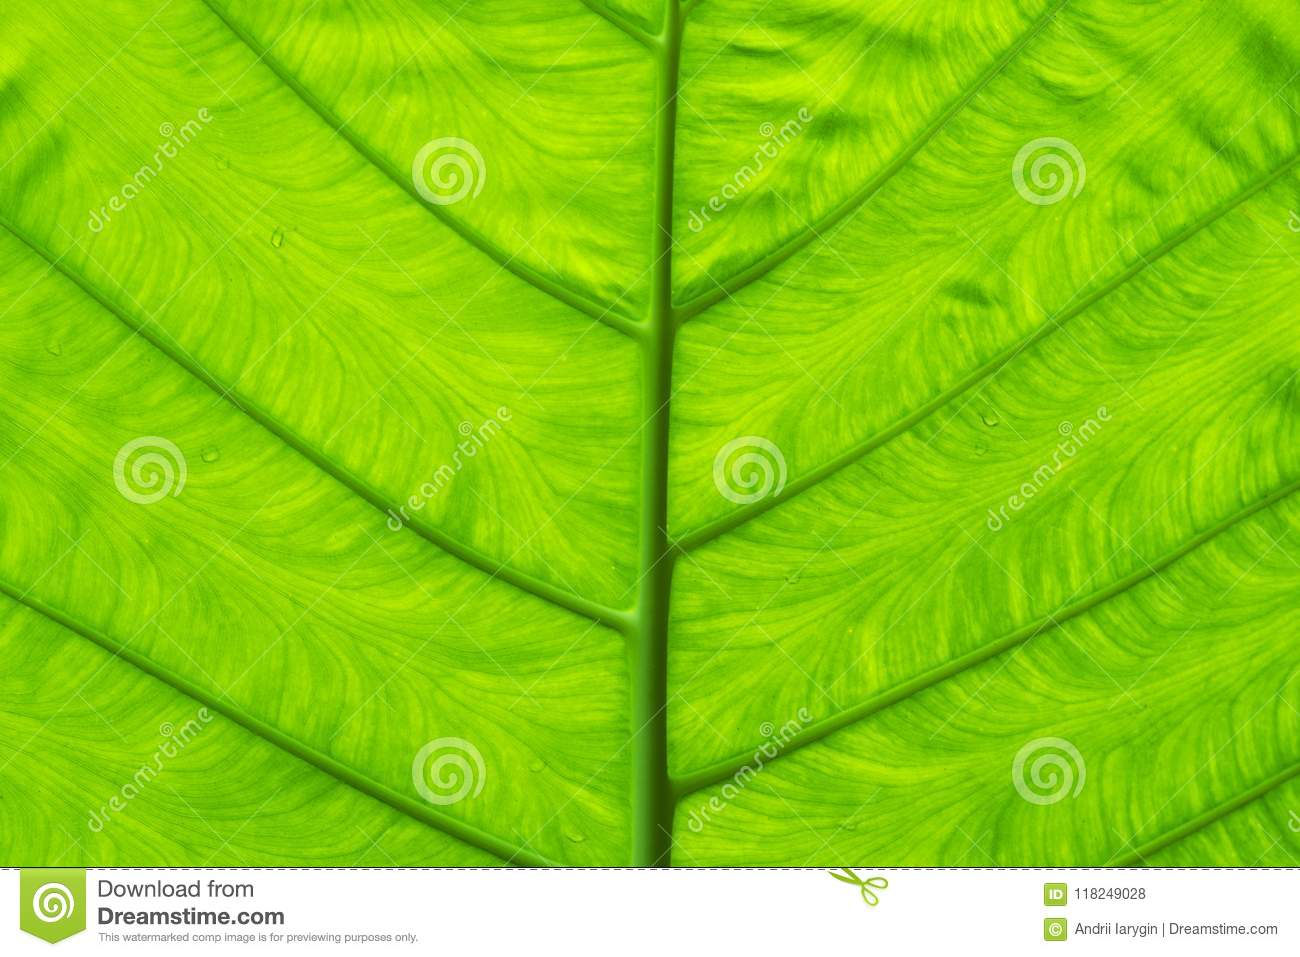 nature wallpaper bright green leaf color stock photo - image of